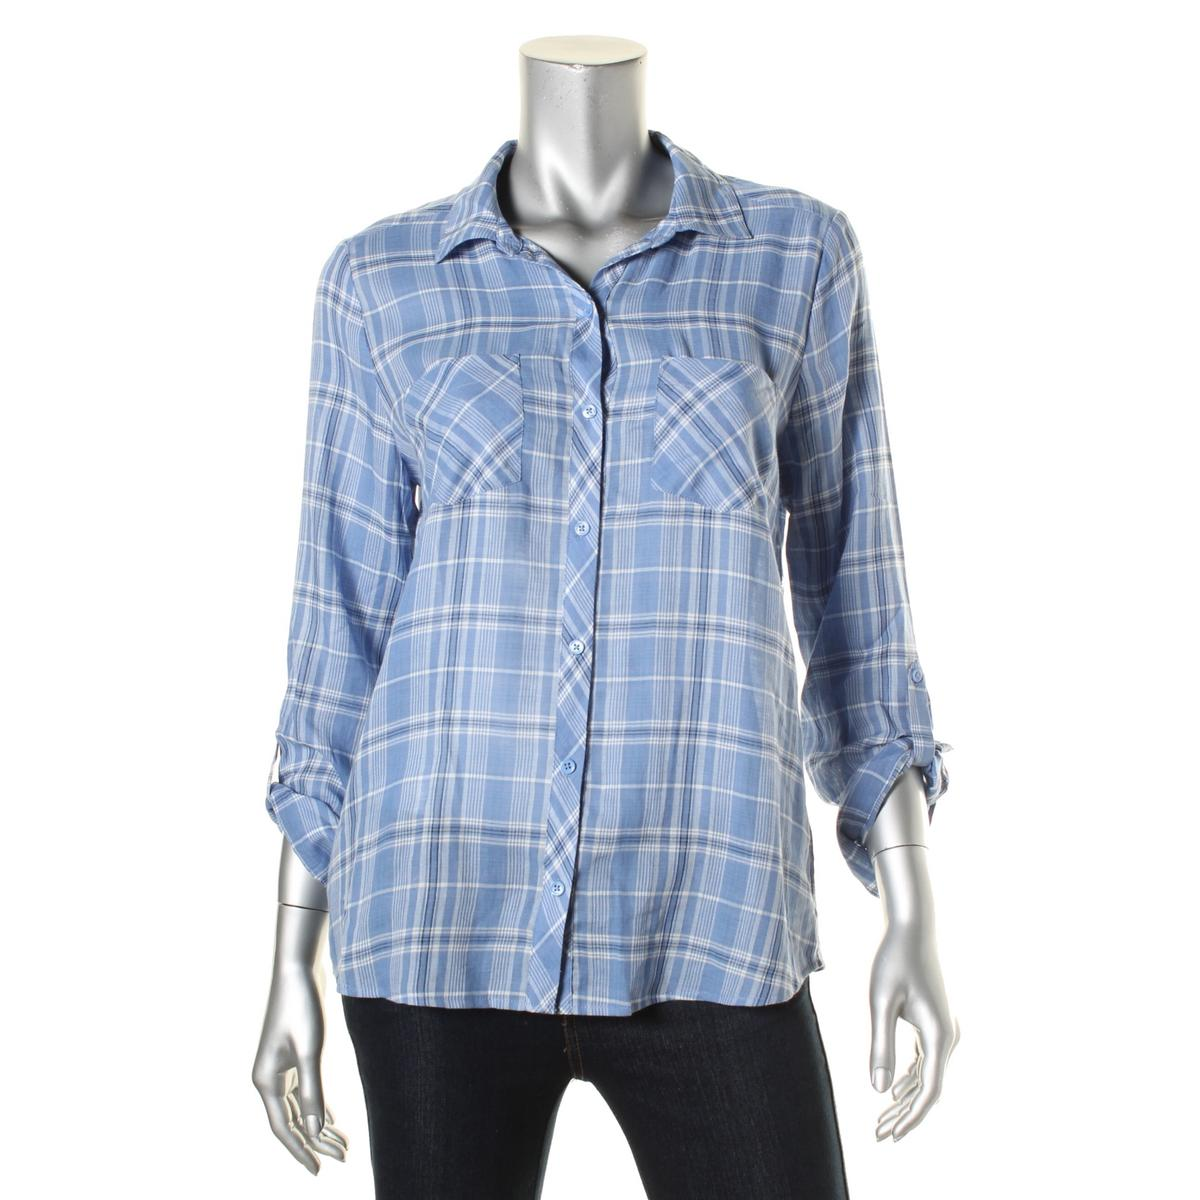 Soft Joie 4540 Womens Sequoia Cotton Plaid Blouse Button